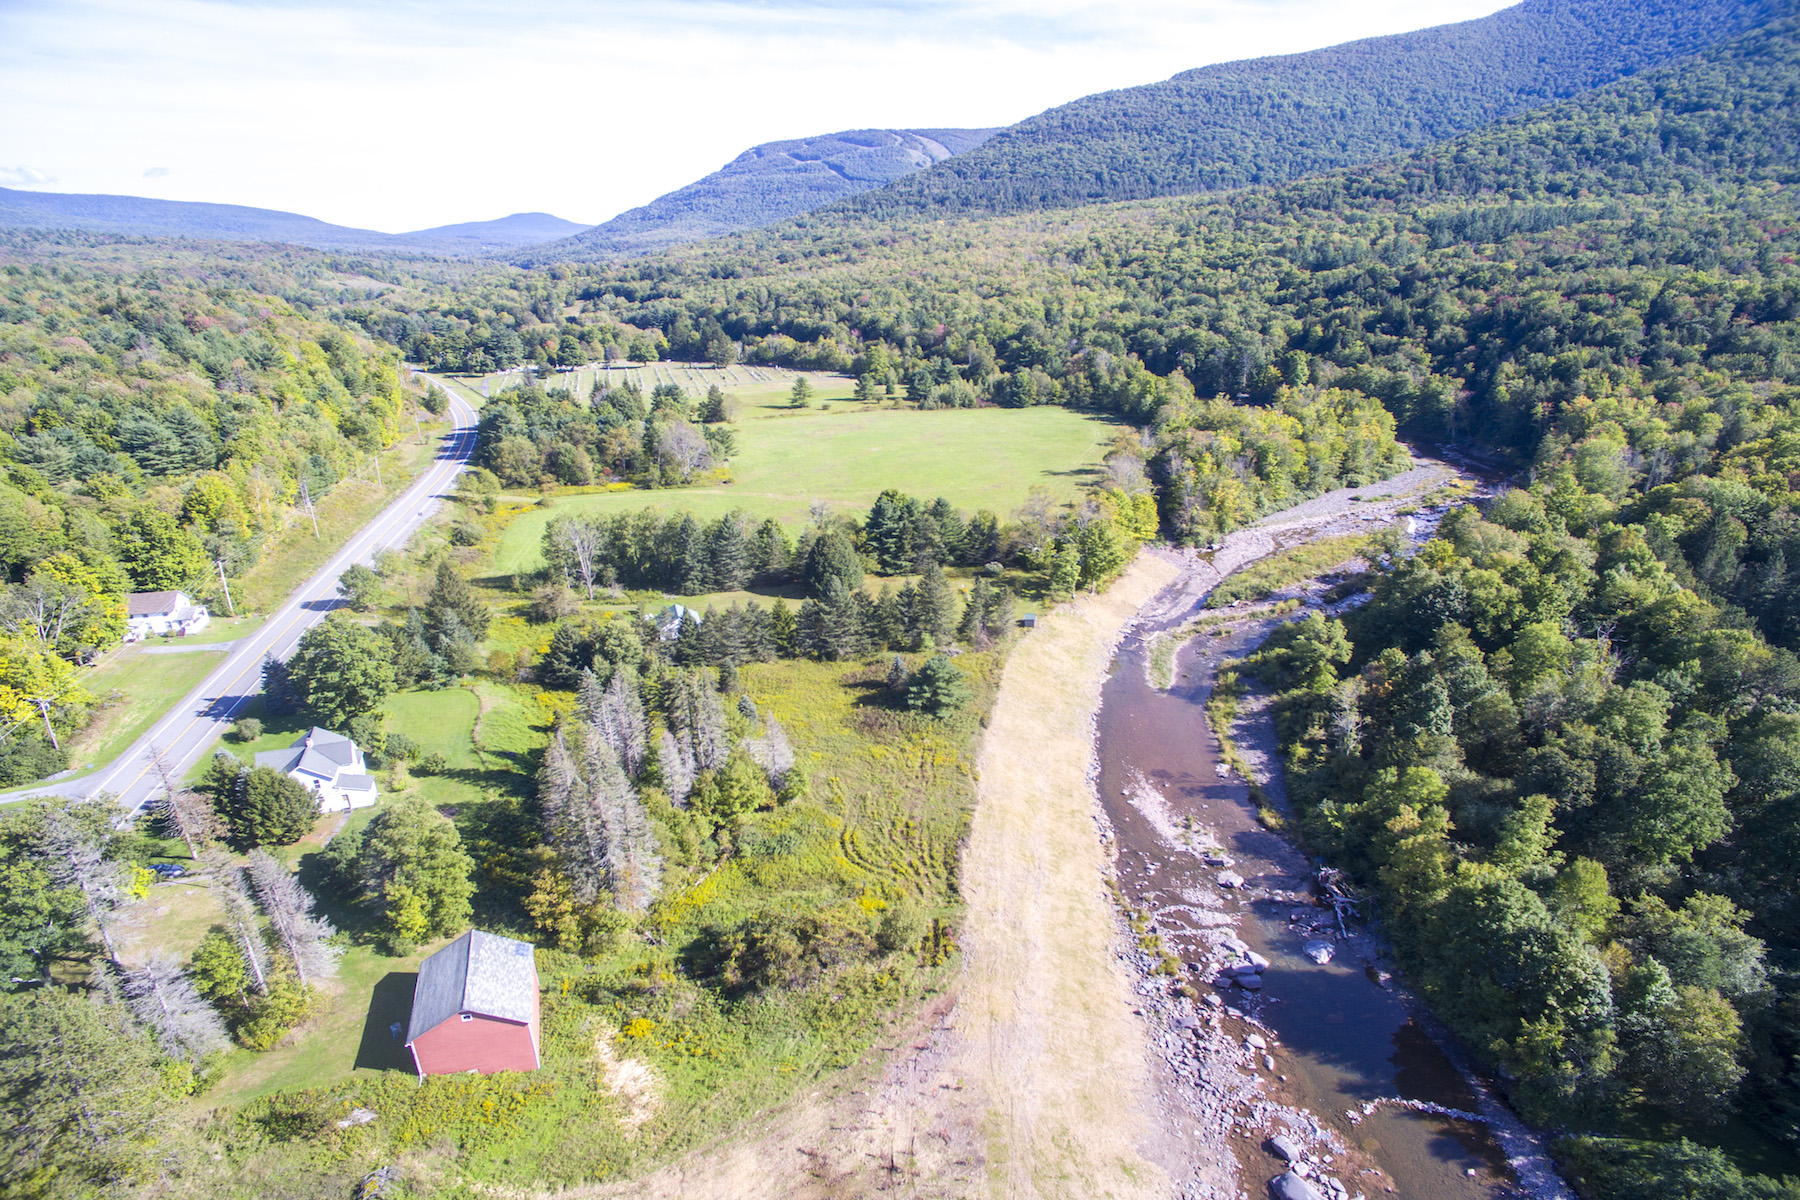 Single Family Home for Sale at Farm House With Incredible View of Schoharie Creek 9093 Route 23a Jewett, New York 12444 United States